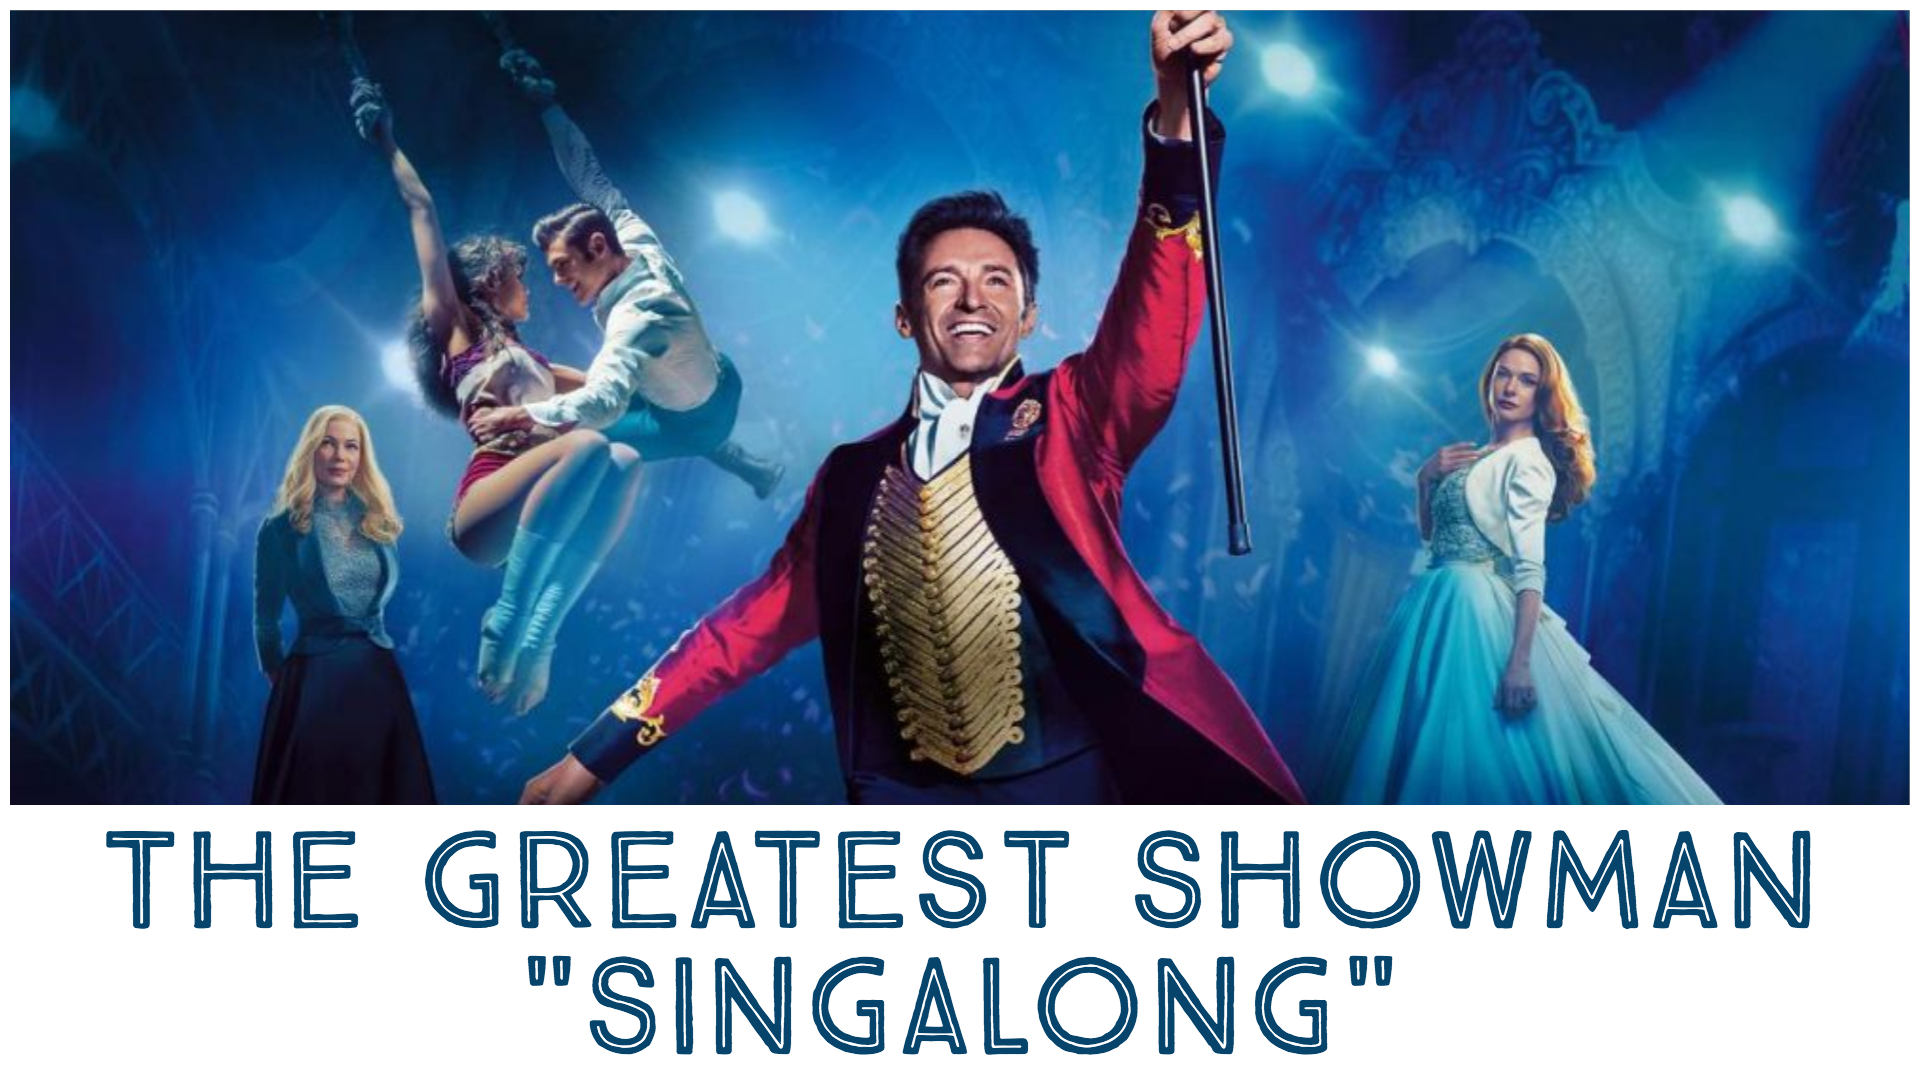 The greatest showman pc